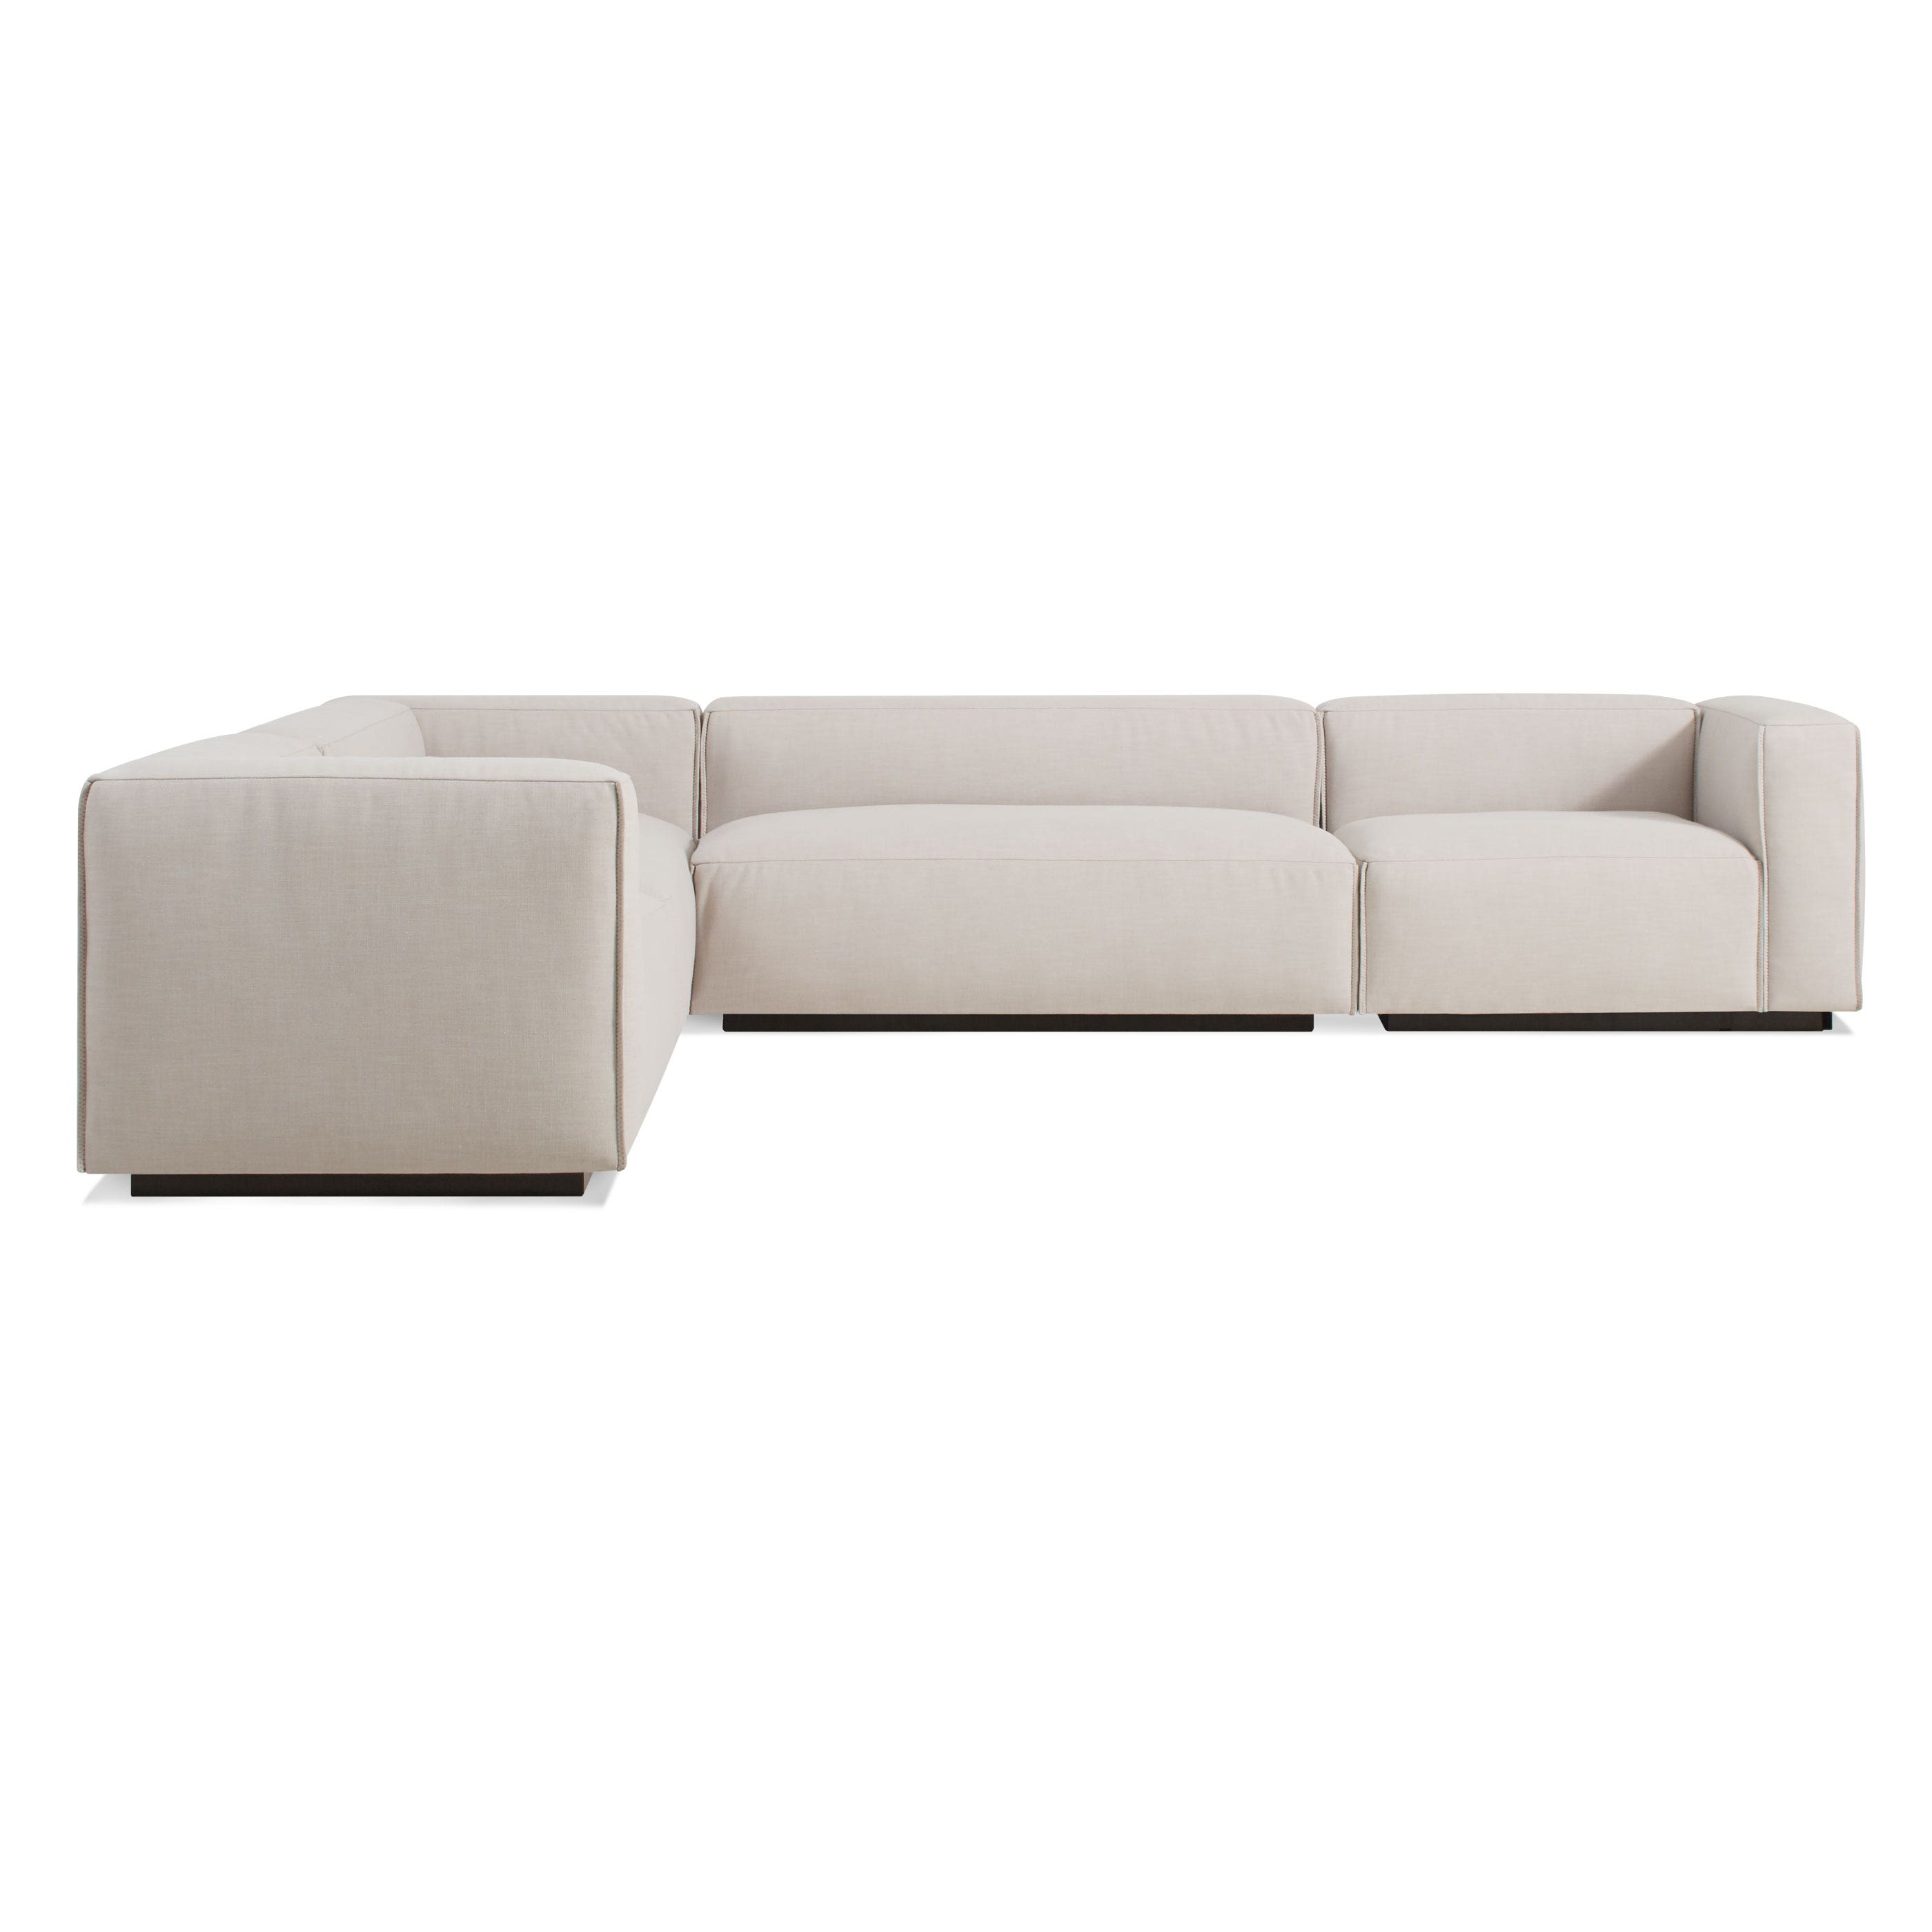 dp set with studio right facing bonded leather brown baxton modern sectional amazon orland sofa chaise com kitchen dining